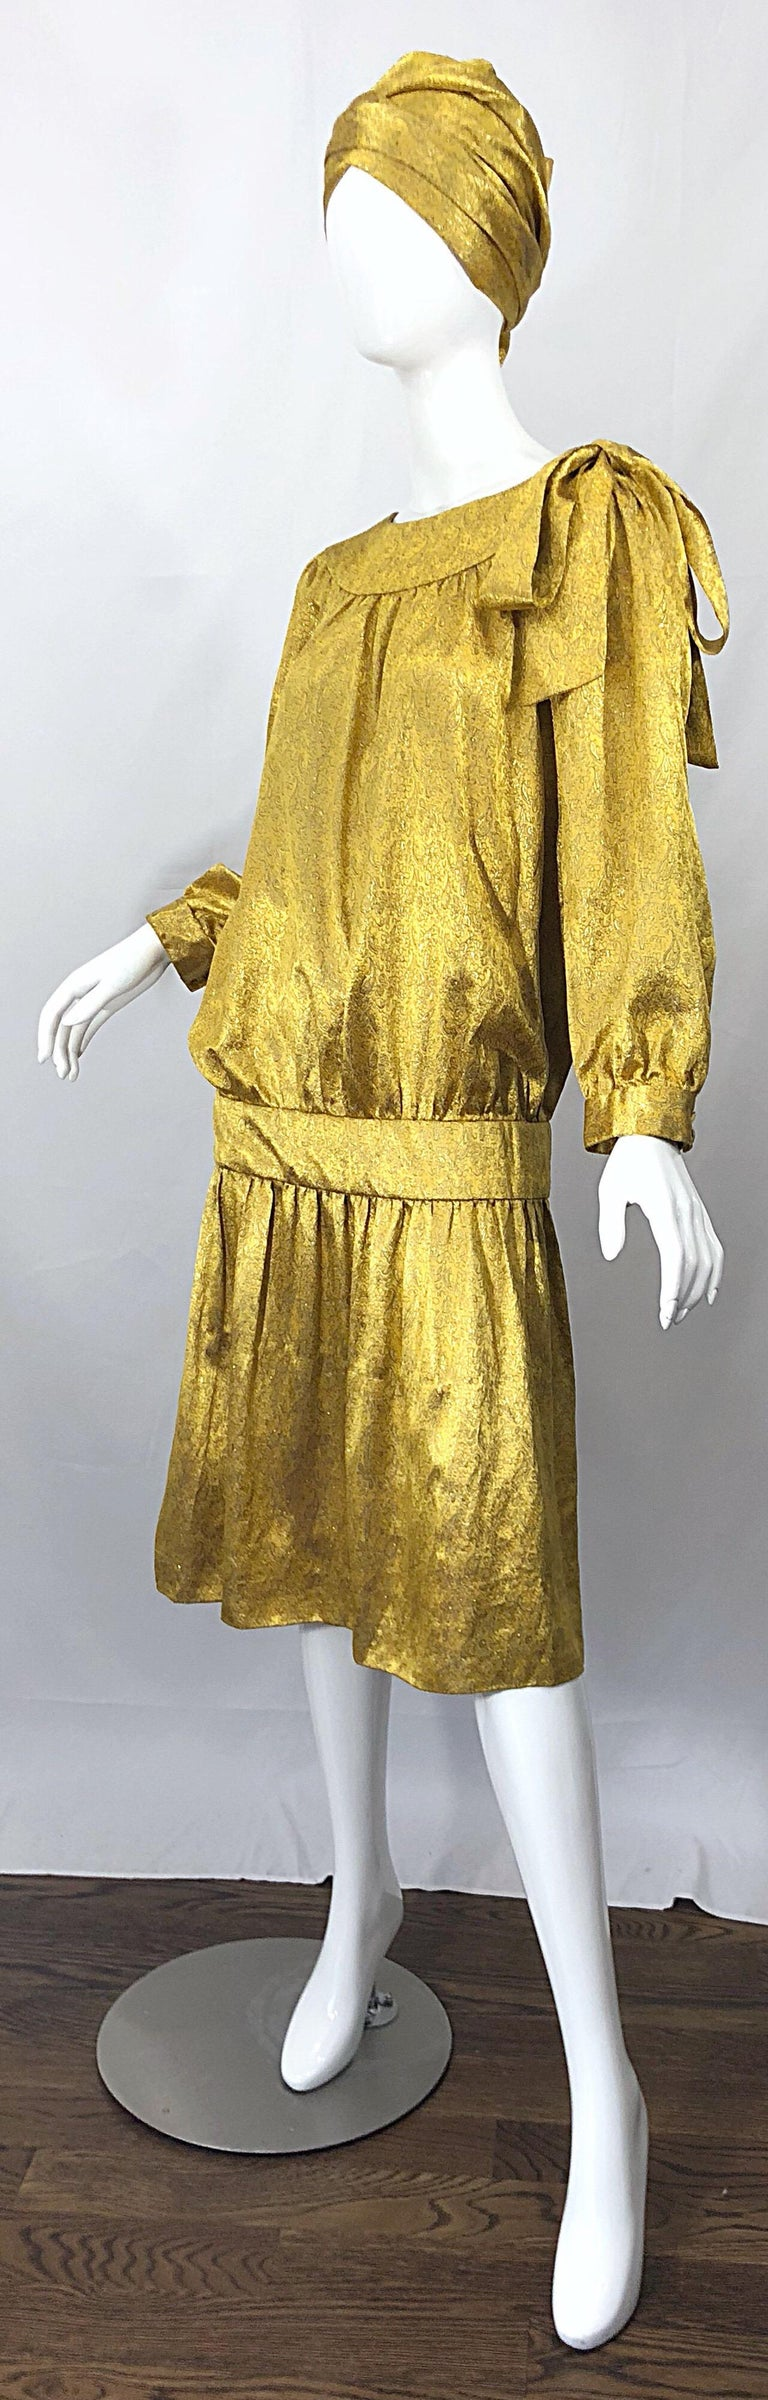 Women's Vintage Brioni Yellow + Gold Silk 1920s Style Drop Waist Dress + Turban Sash For Sale